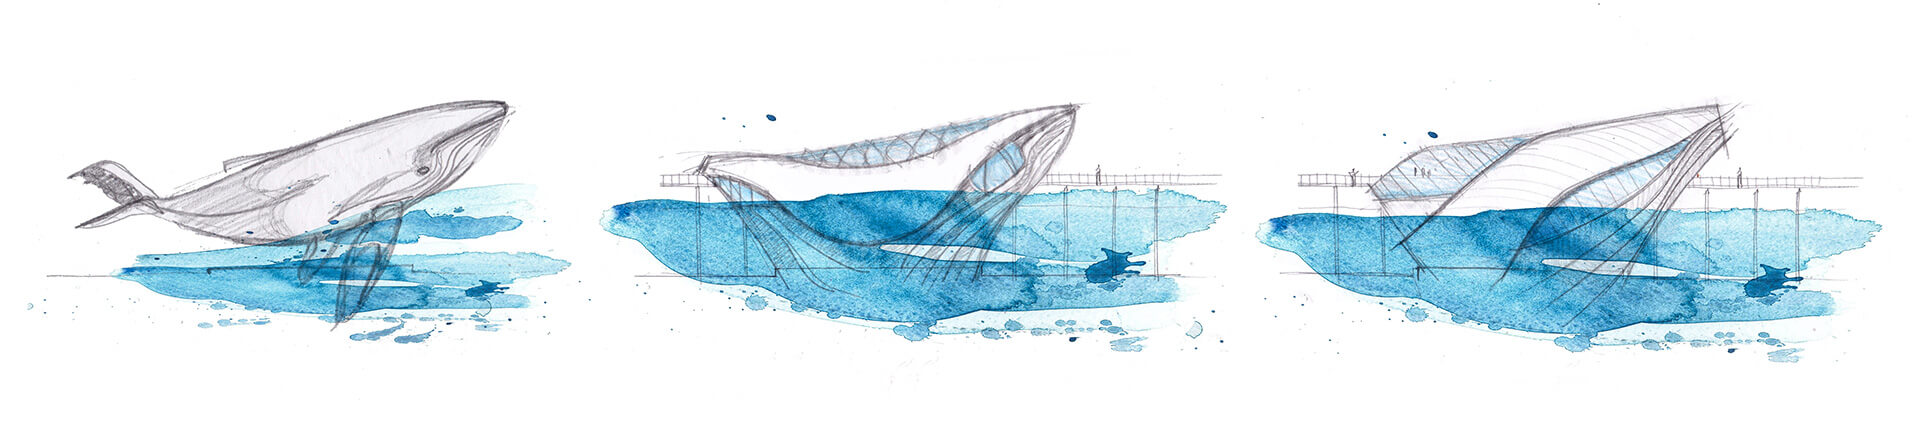 Conceptual sketch of the Australian Underwater Discovery Centre | Australian Underwater Discovery Centre by Baca Architects | STIRworld